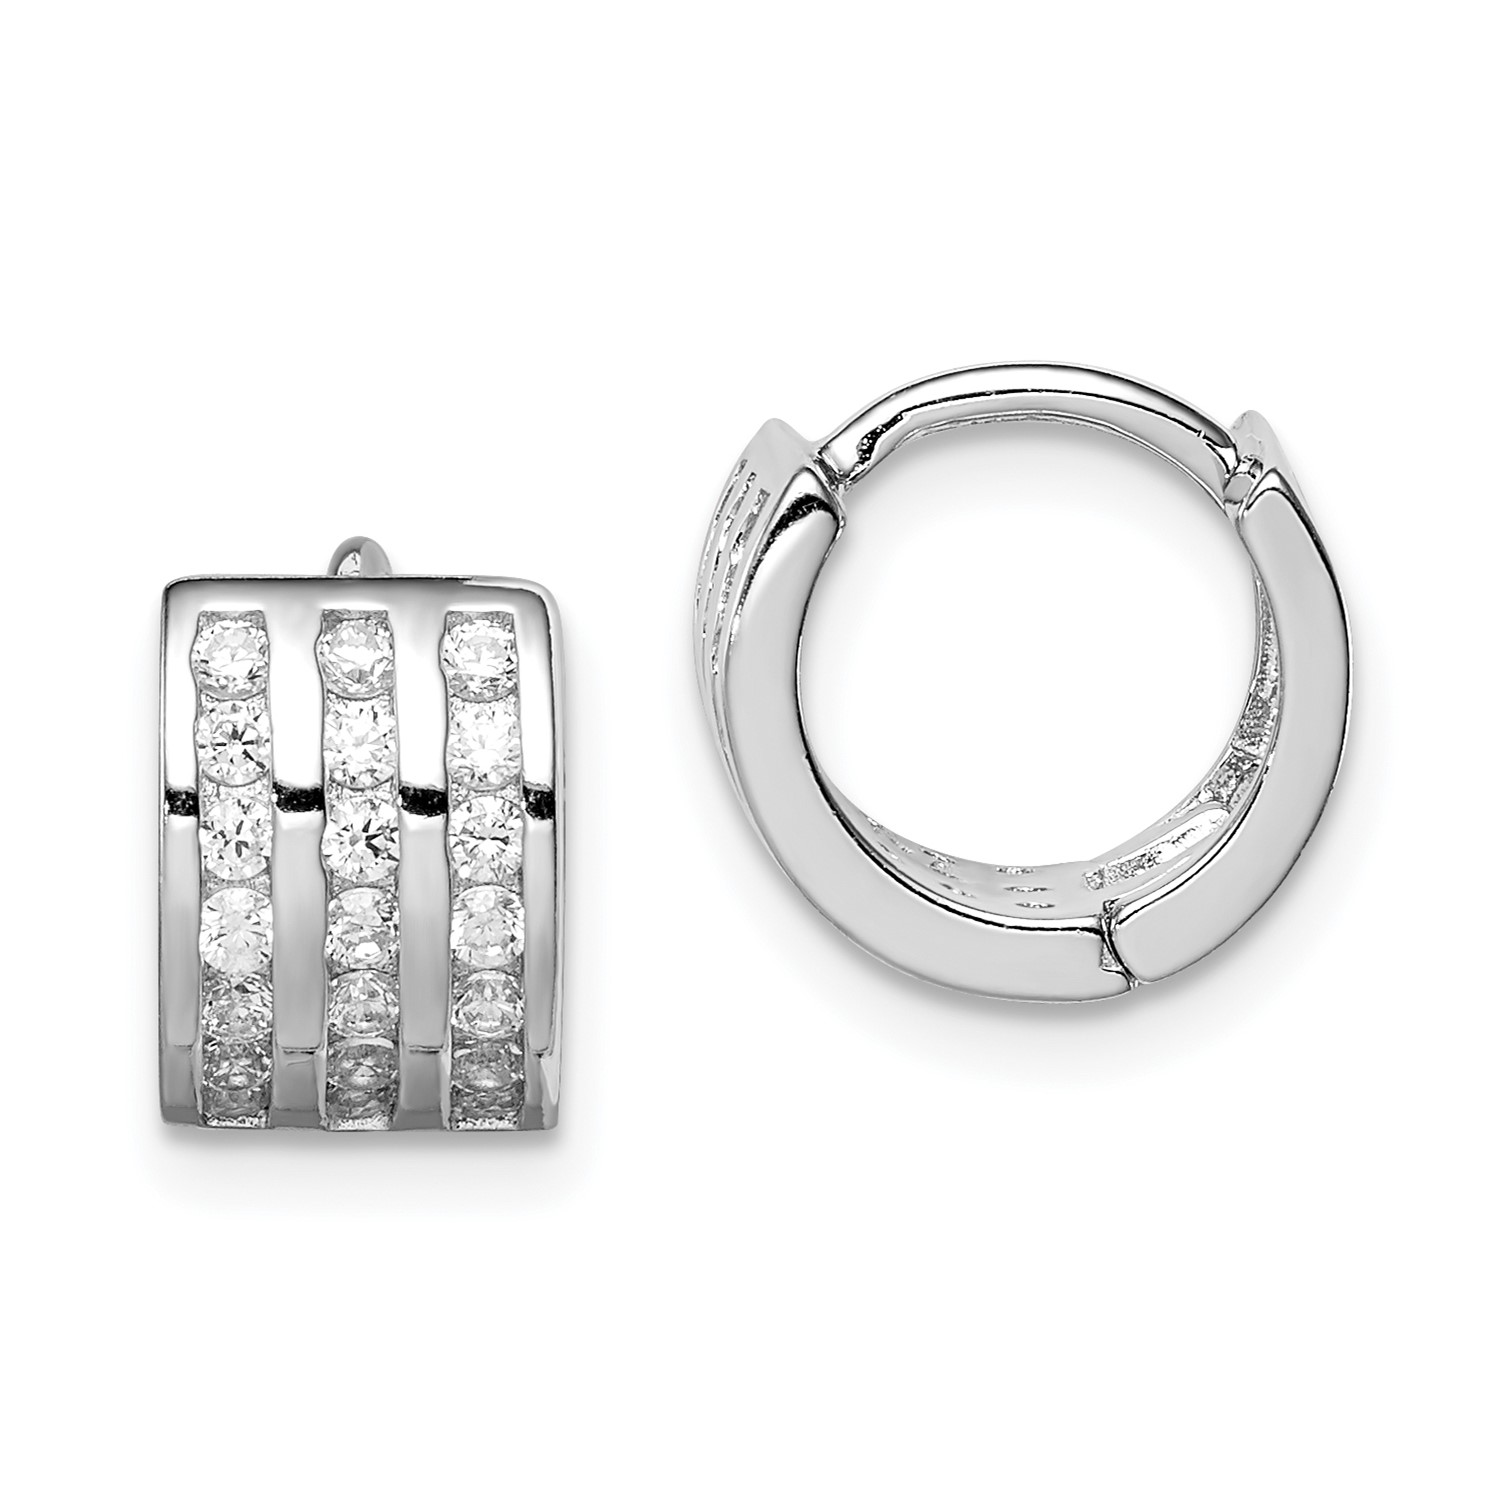 87d40641fe50a Details about Sterling Silver Polished Rhodium-plated 3-row Hinged Hoop  Earrings (0.4IN Diam.)